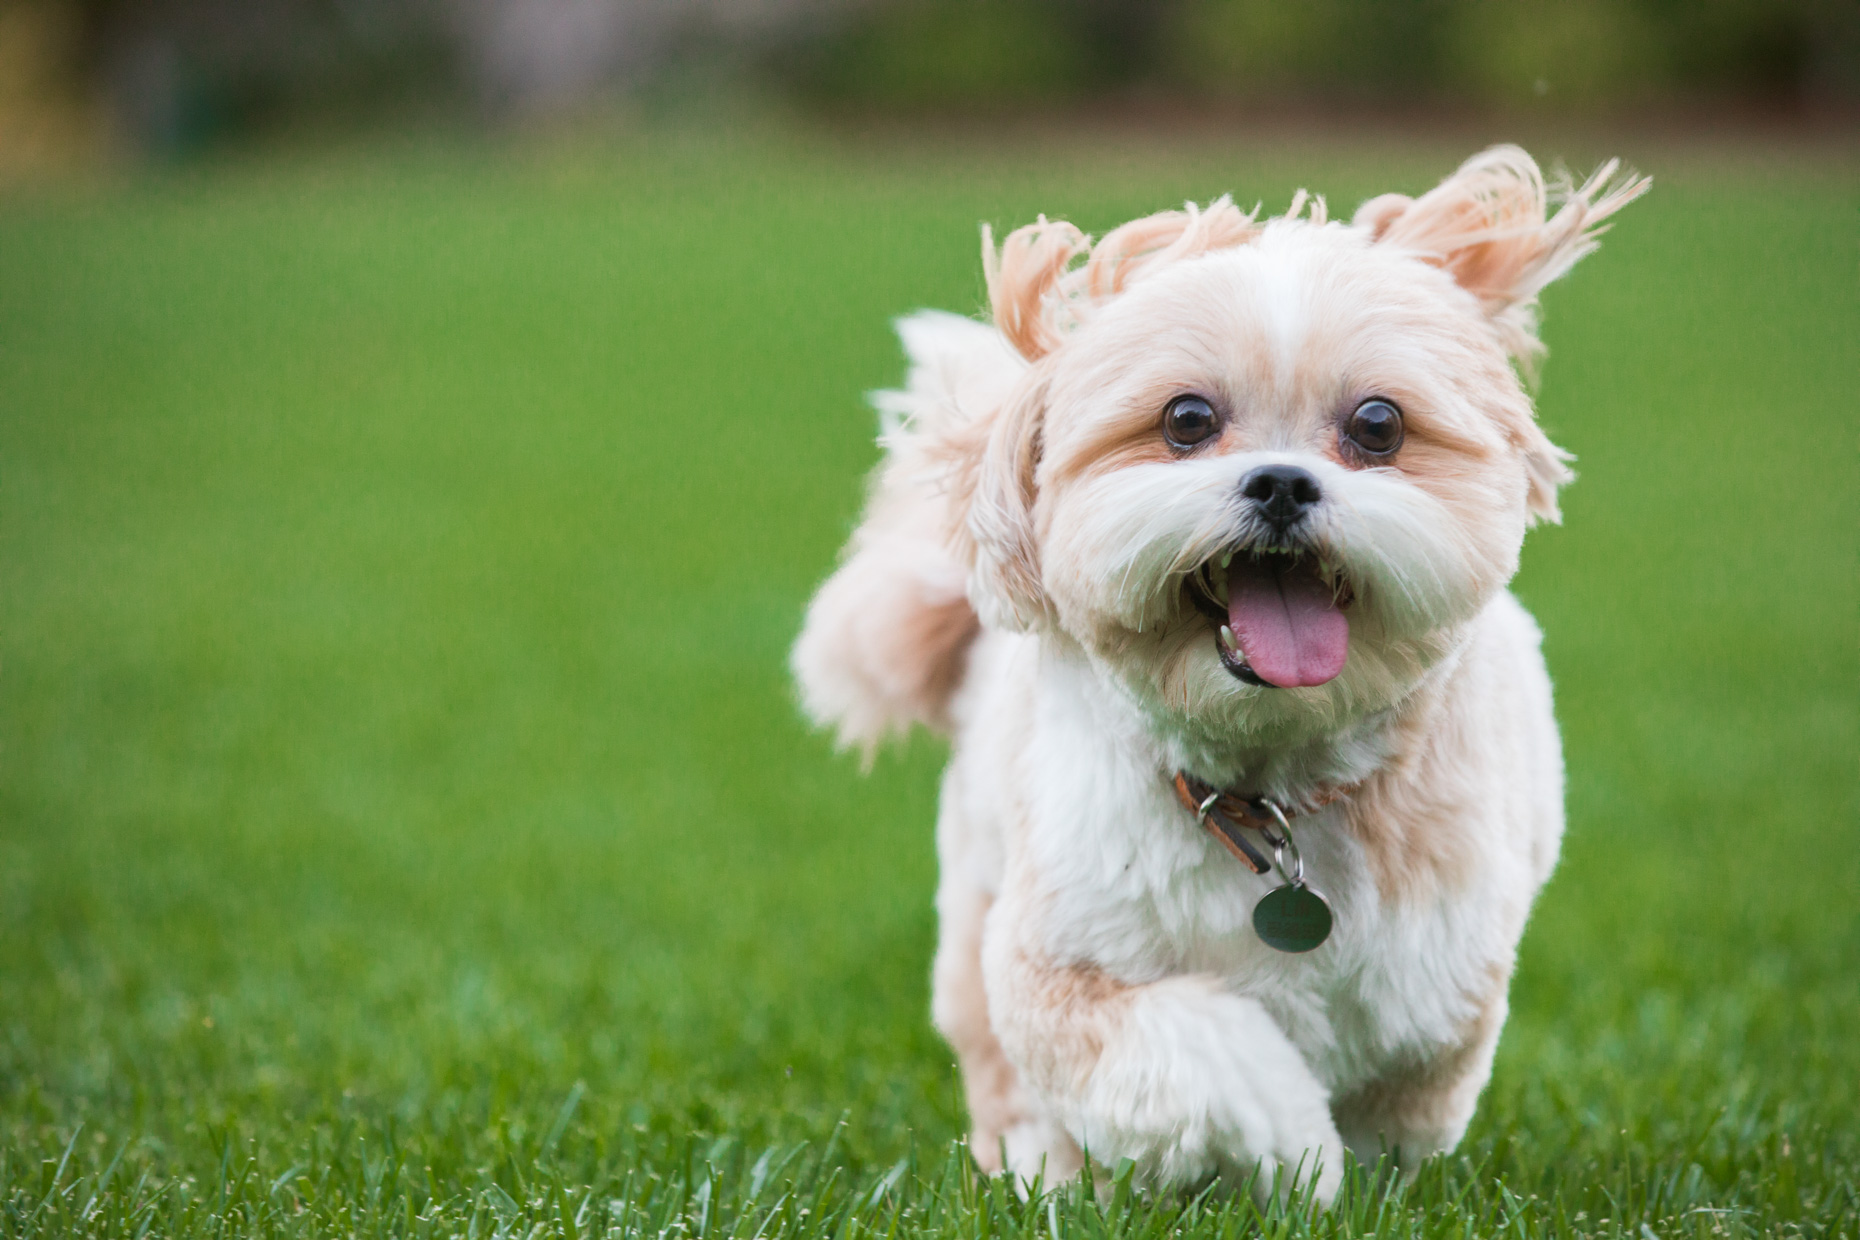 Dog and Pet Photography | Lhasa Apso Running by Mark Rogers